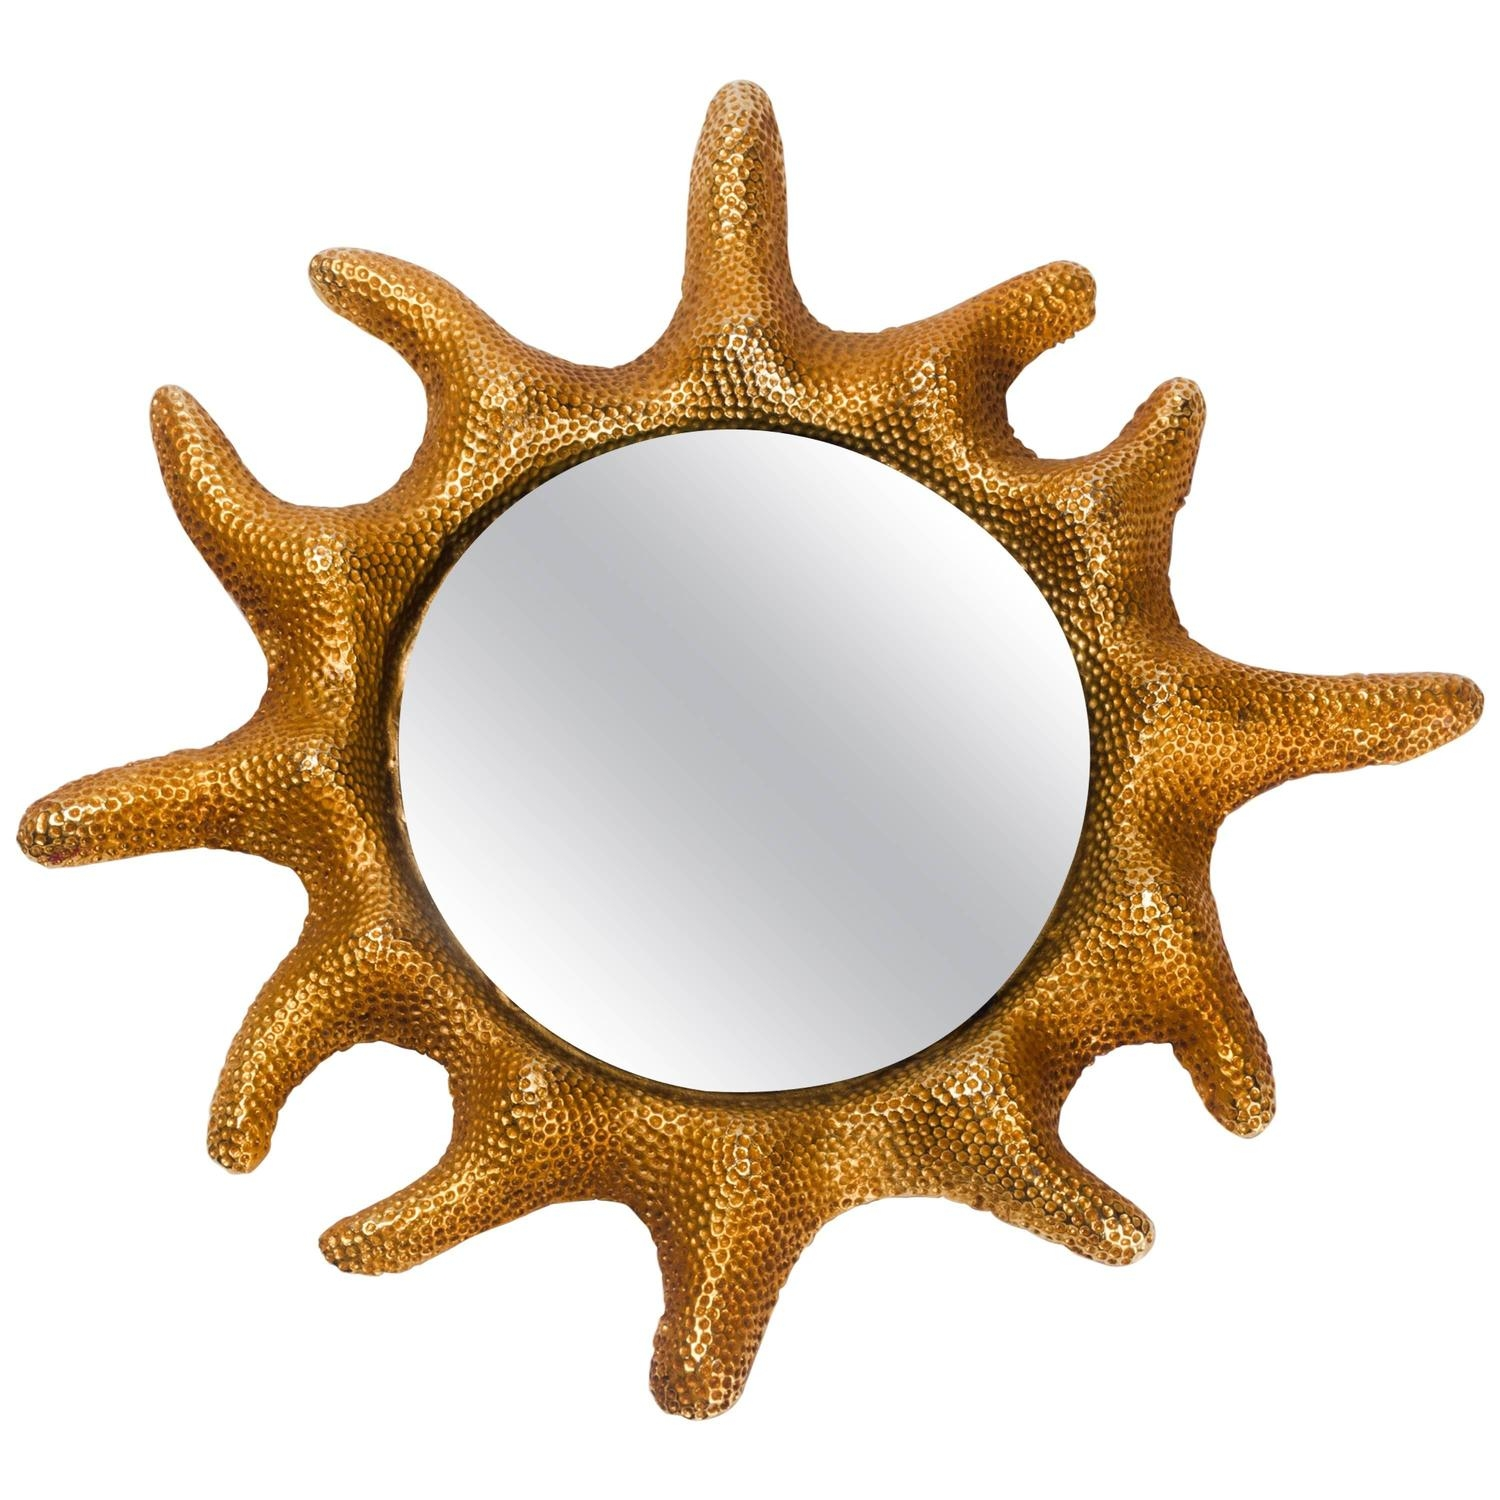 Antique And Vintage Sunburst Mirrors 524 For Sale At 1stdibs Throughout Rococo Mirror Cheap (Image 2 of 15)